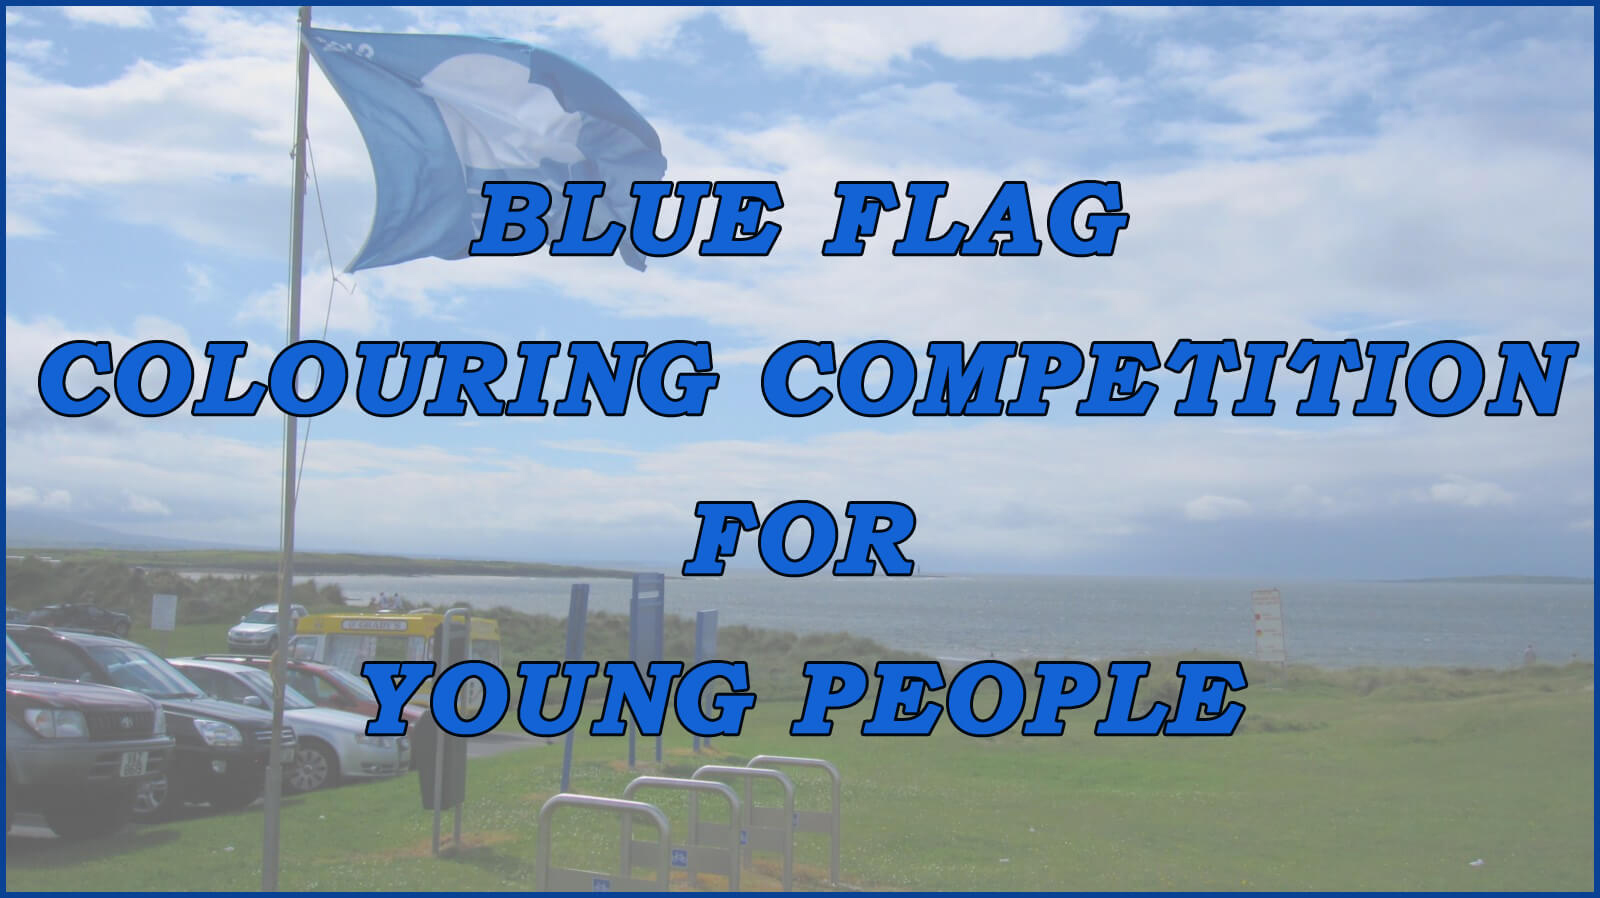 Blue Flag Colouring Competition